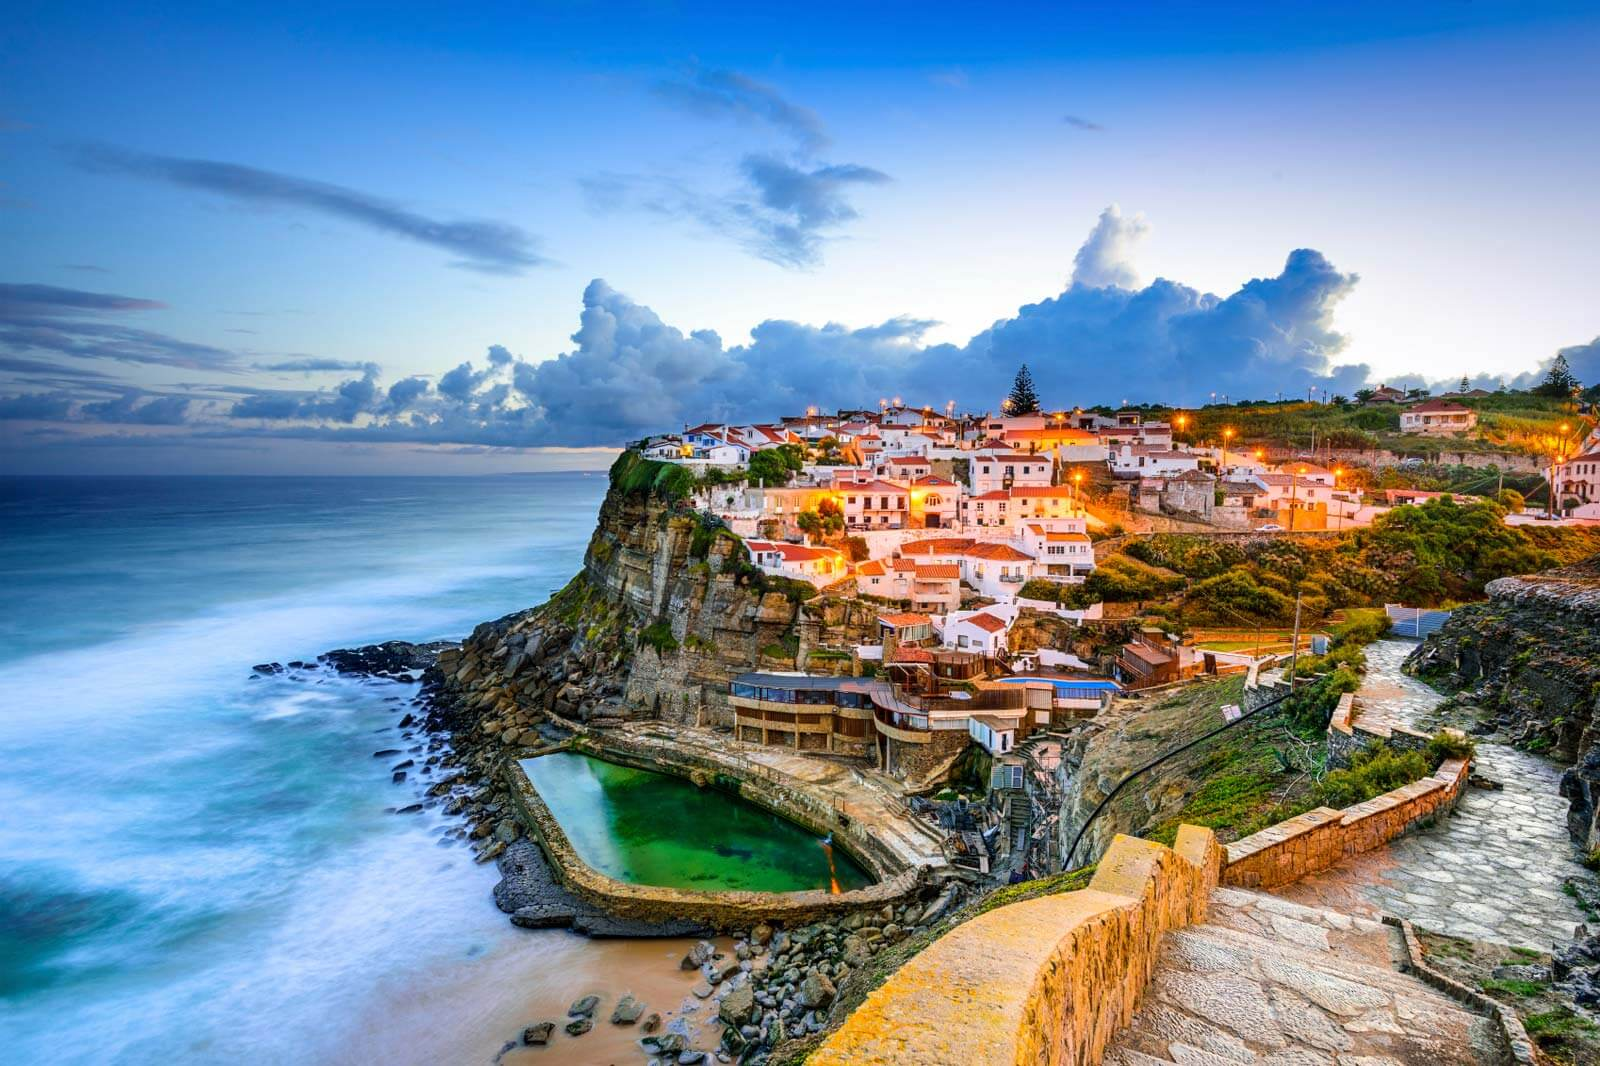 Portugal - 10 Best Winter Sun Holiday Destinations For Families